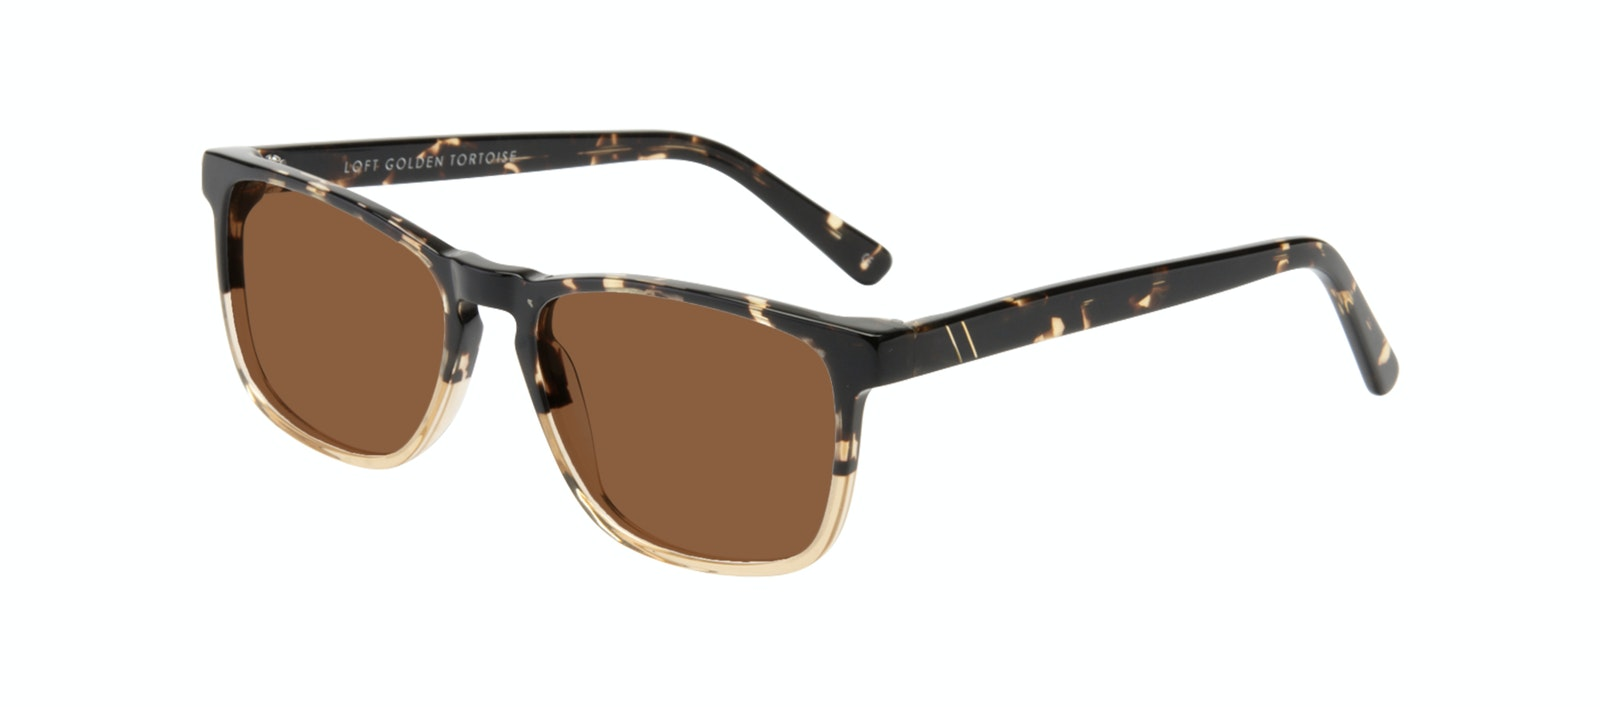 Affordable Fashion Glasses Rectangle Sunglasses Men Loft Golden Tortoise Tilt